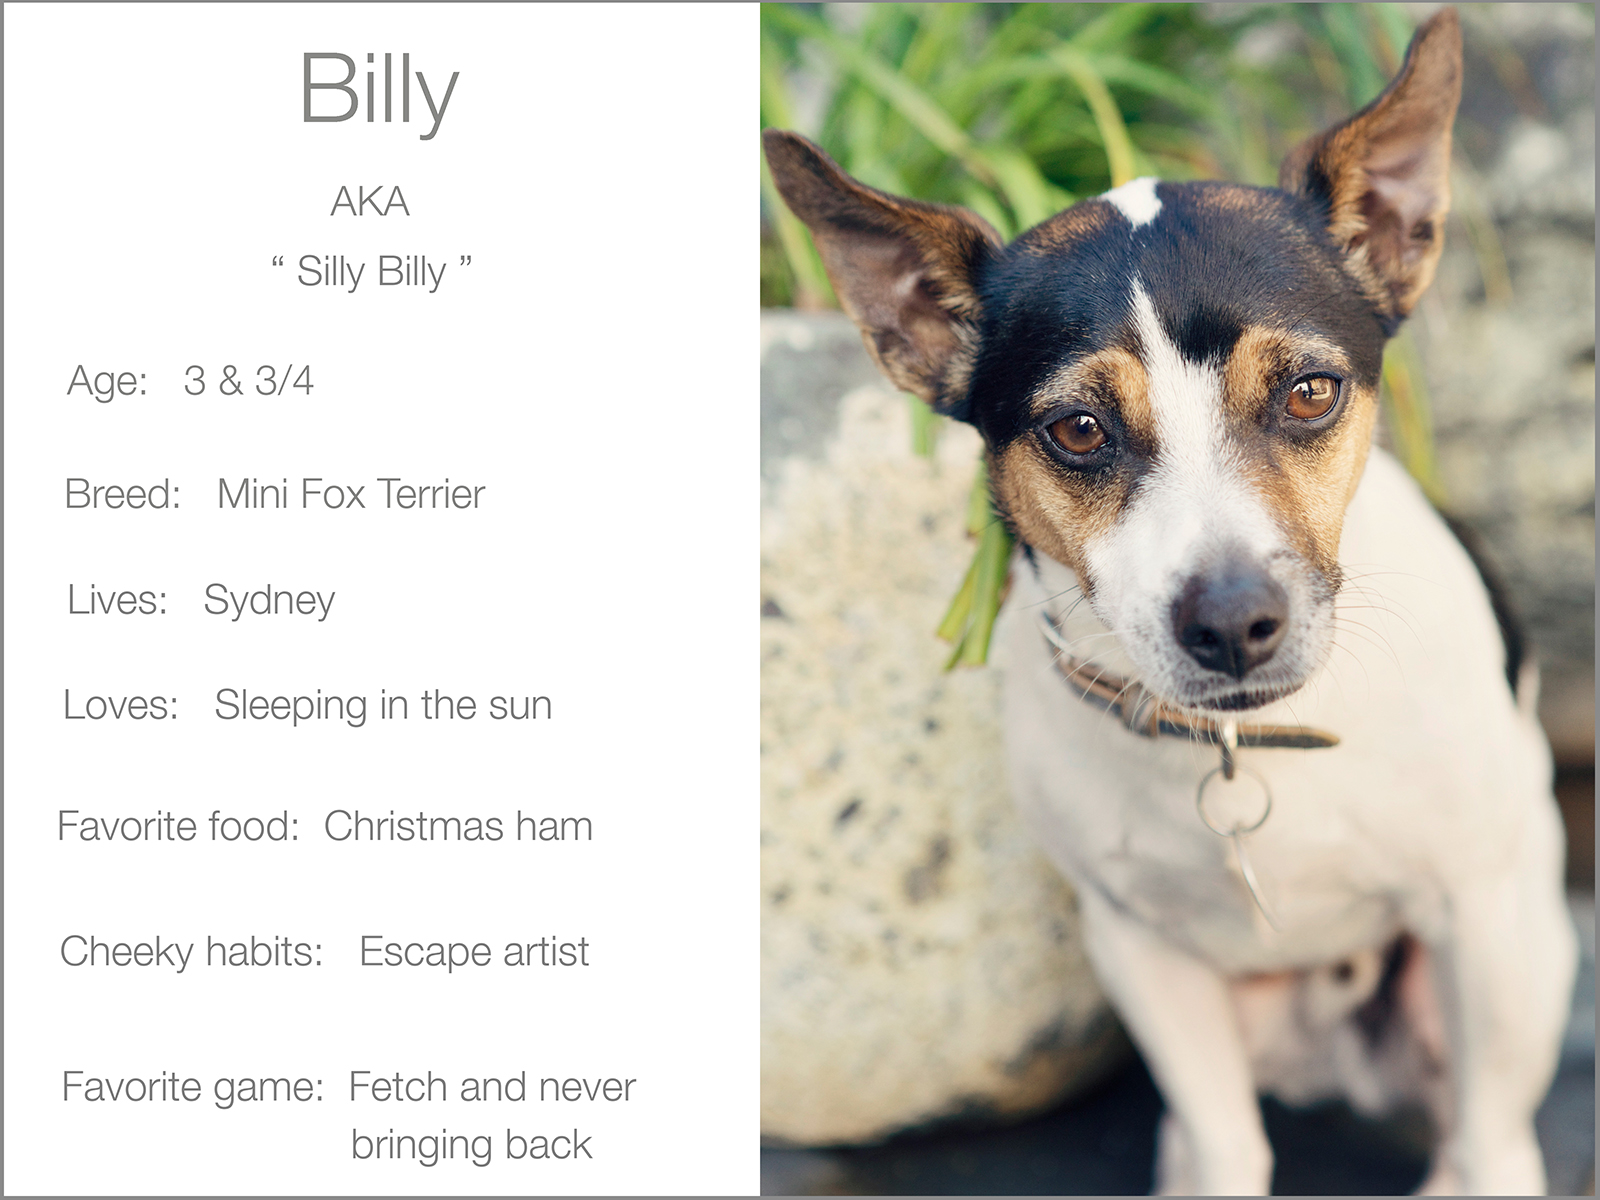 Billy blurb